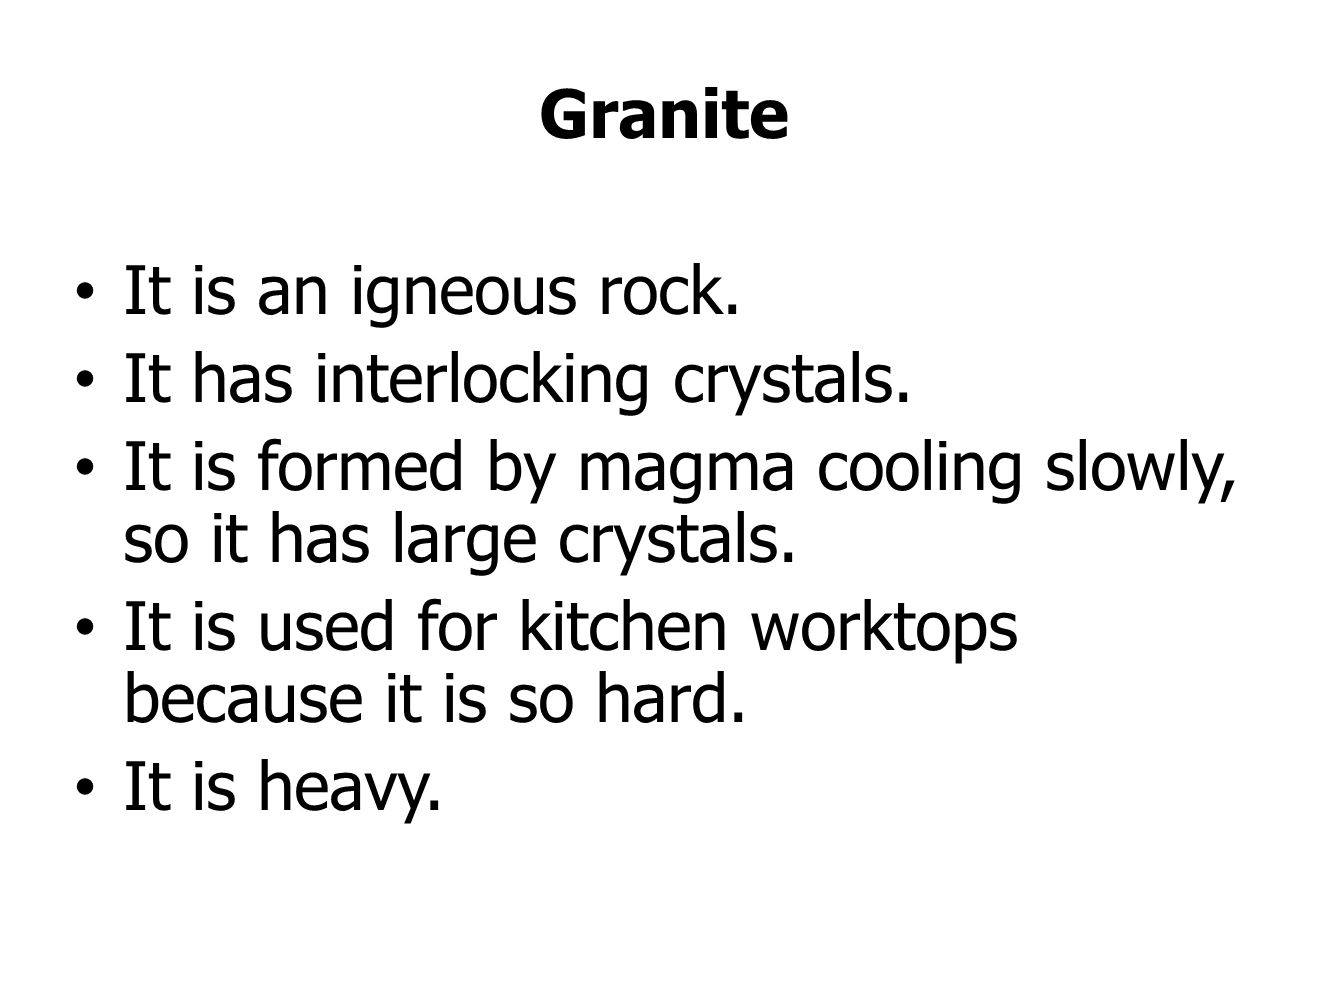 Granite It is an igneous rock. It has interlocking crystals. It is formed by magma cooling slowly, so it has large crystals.